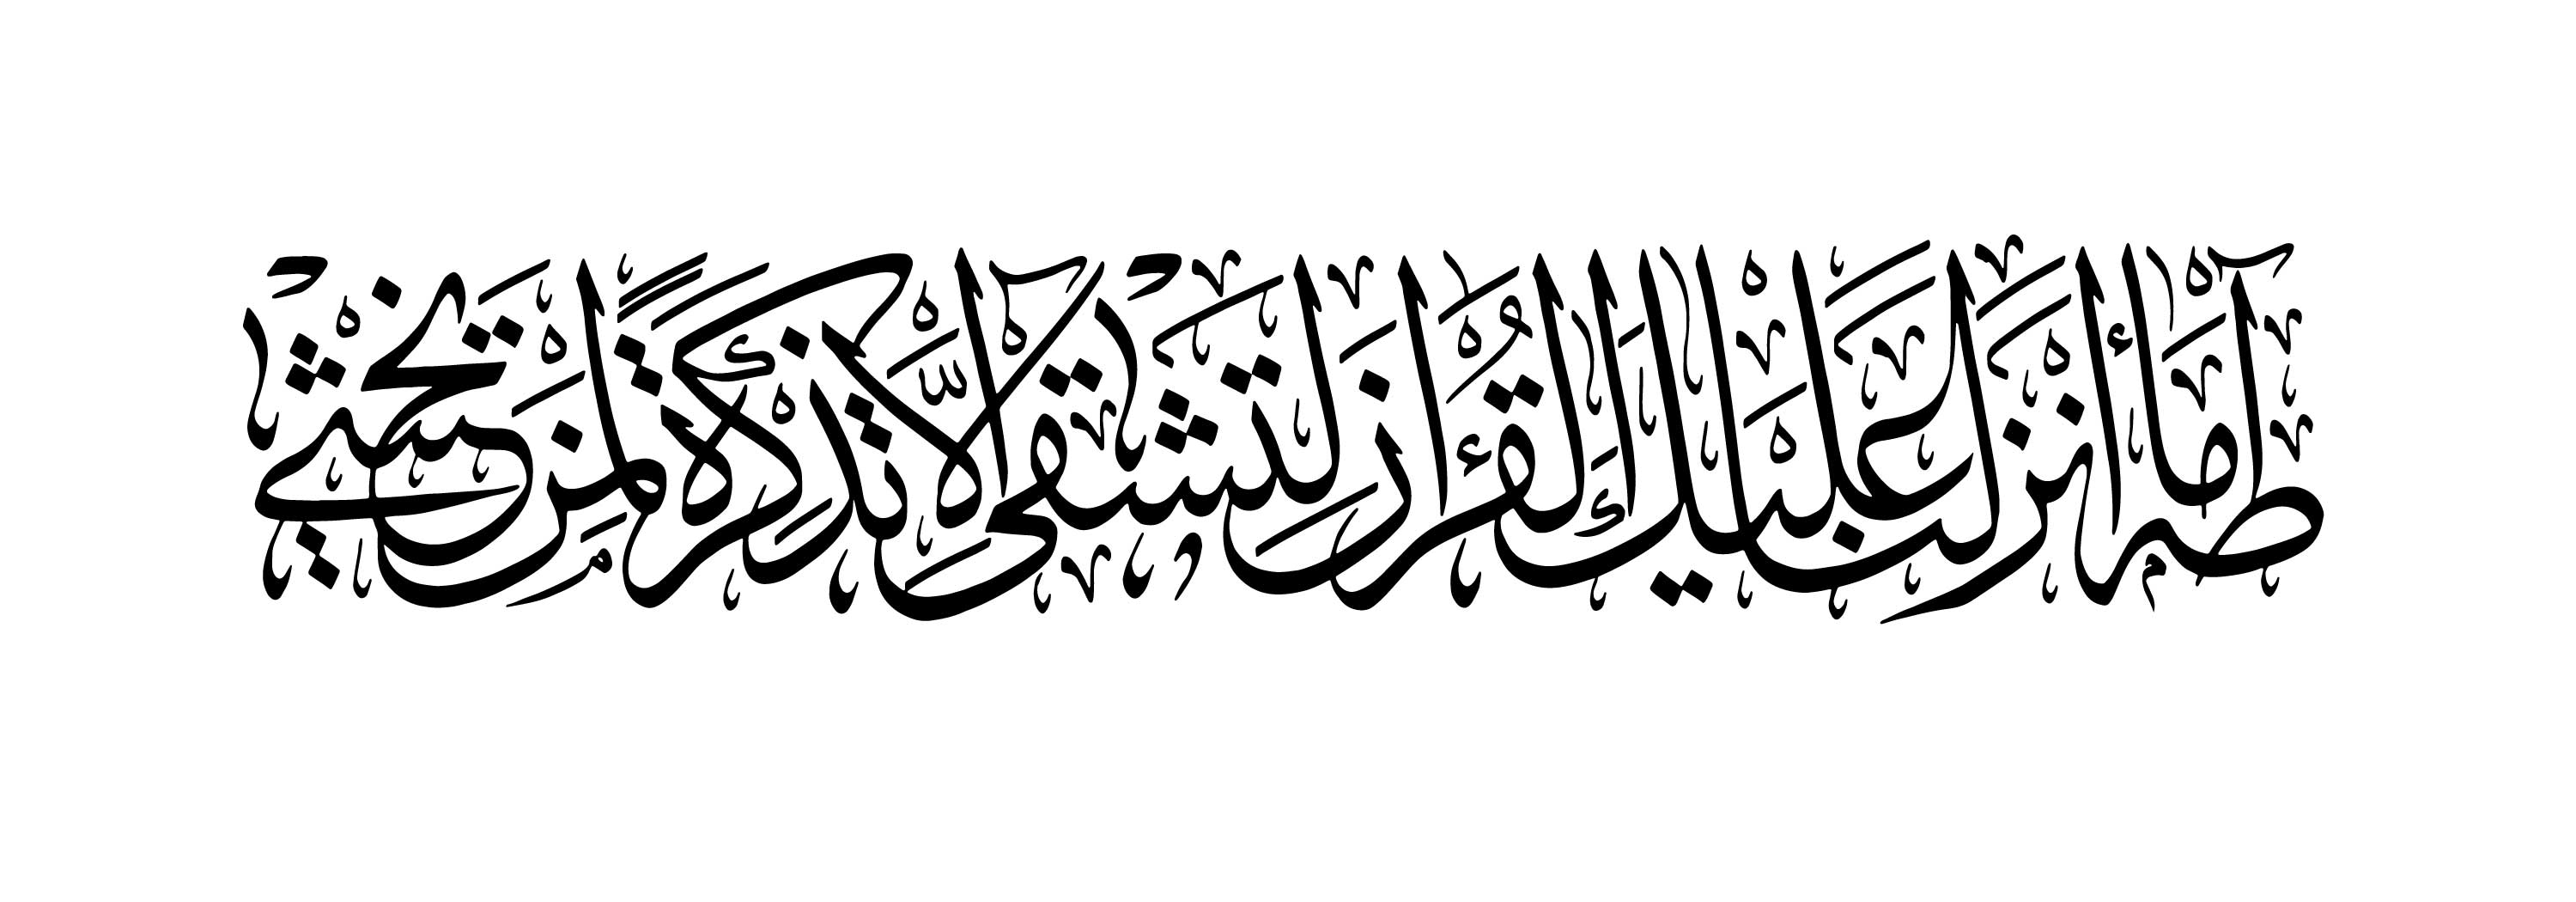 displaying 19 gt images for arabic calligraphy quran pictures